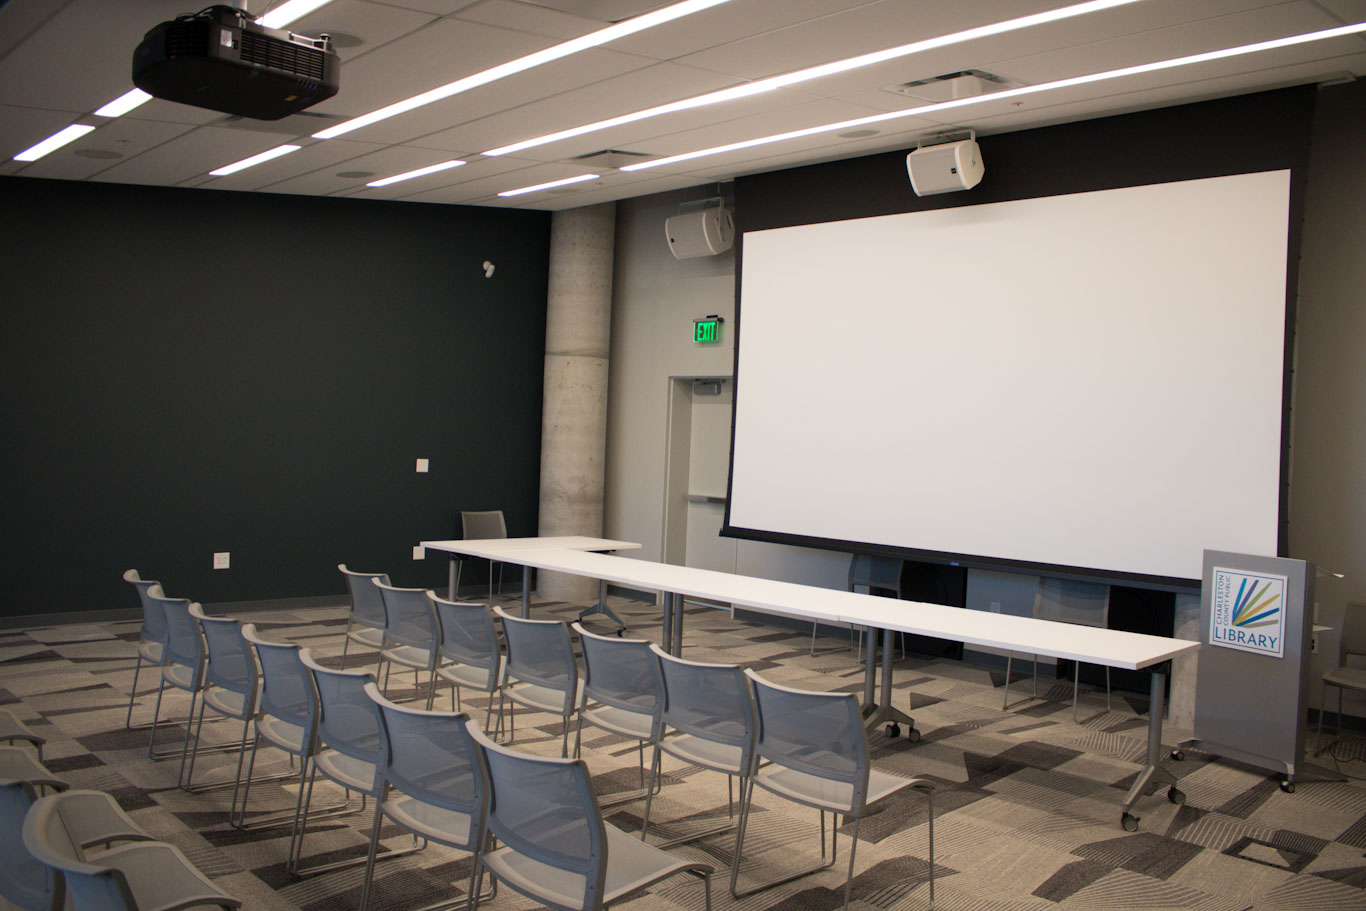 Large Room - Capacity: 55, projector, screen, audio/vido equipment